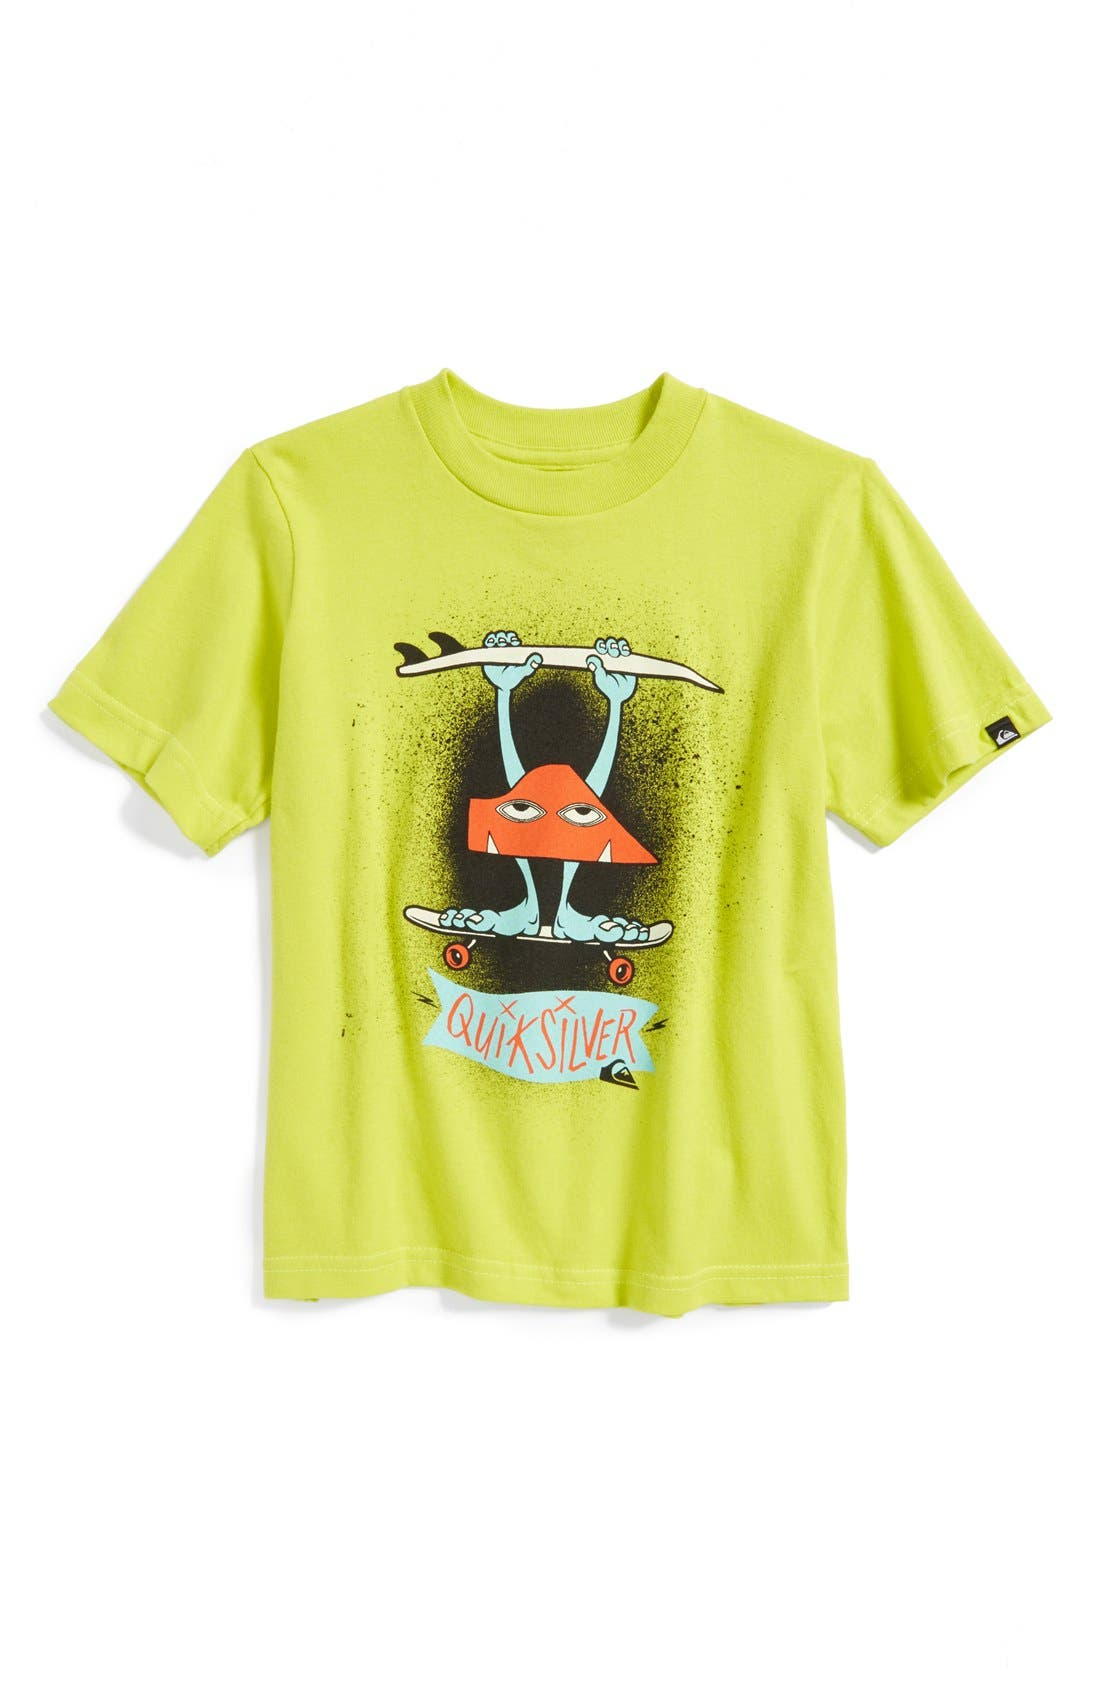 Main Image - Quiksilver 'Grem Grom' Graphic T-Shirt (Toddler Boys)